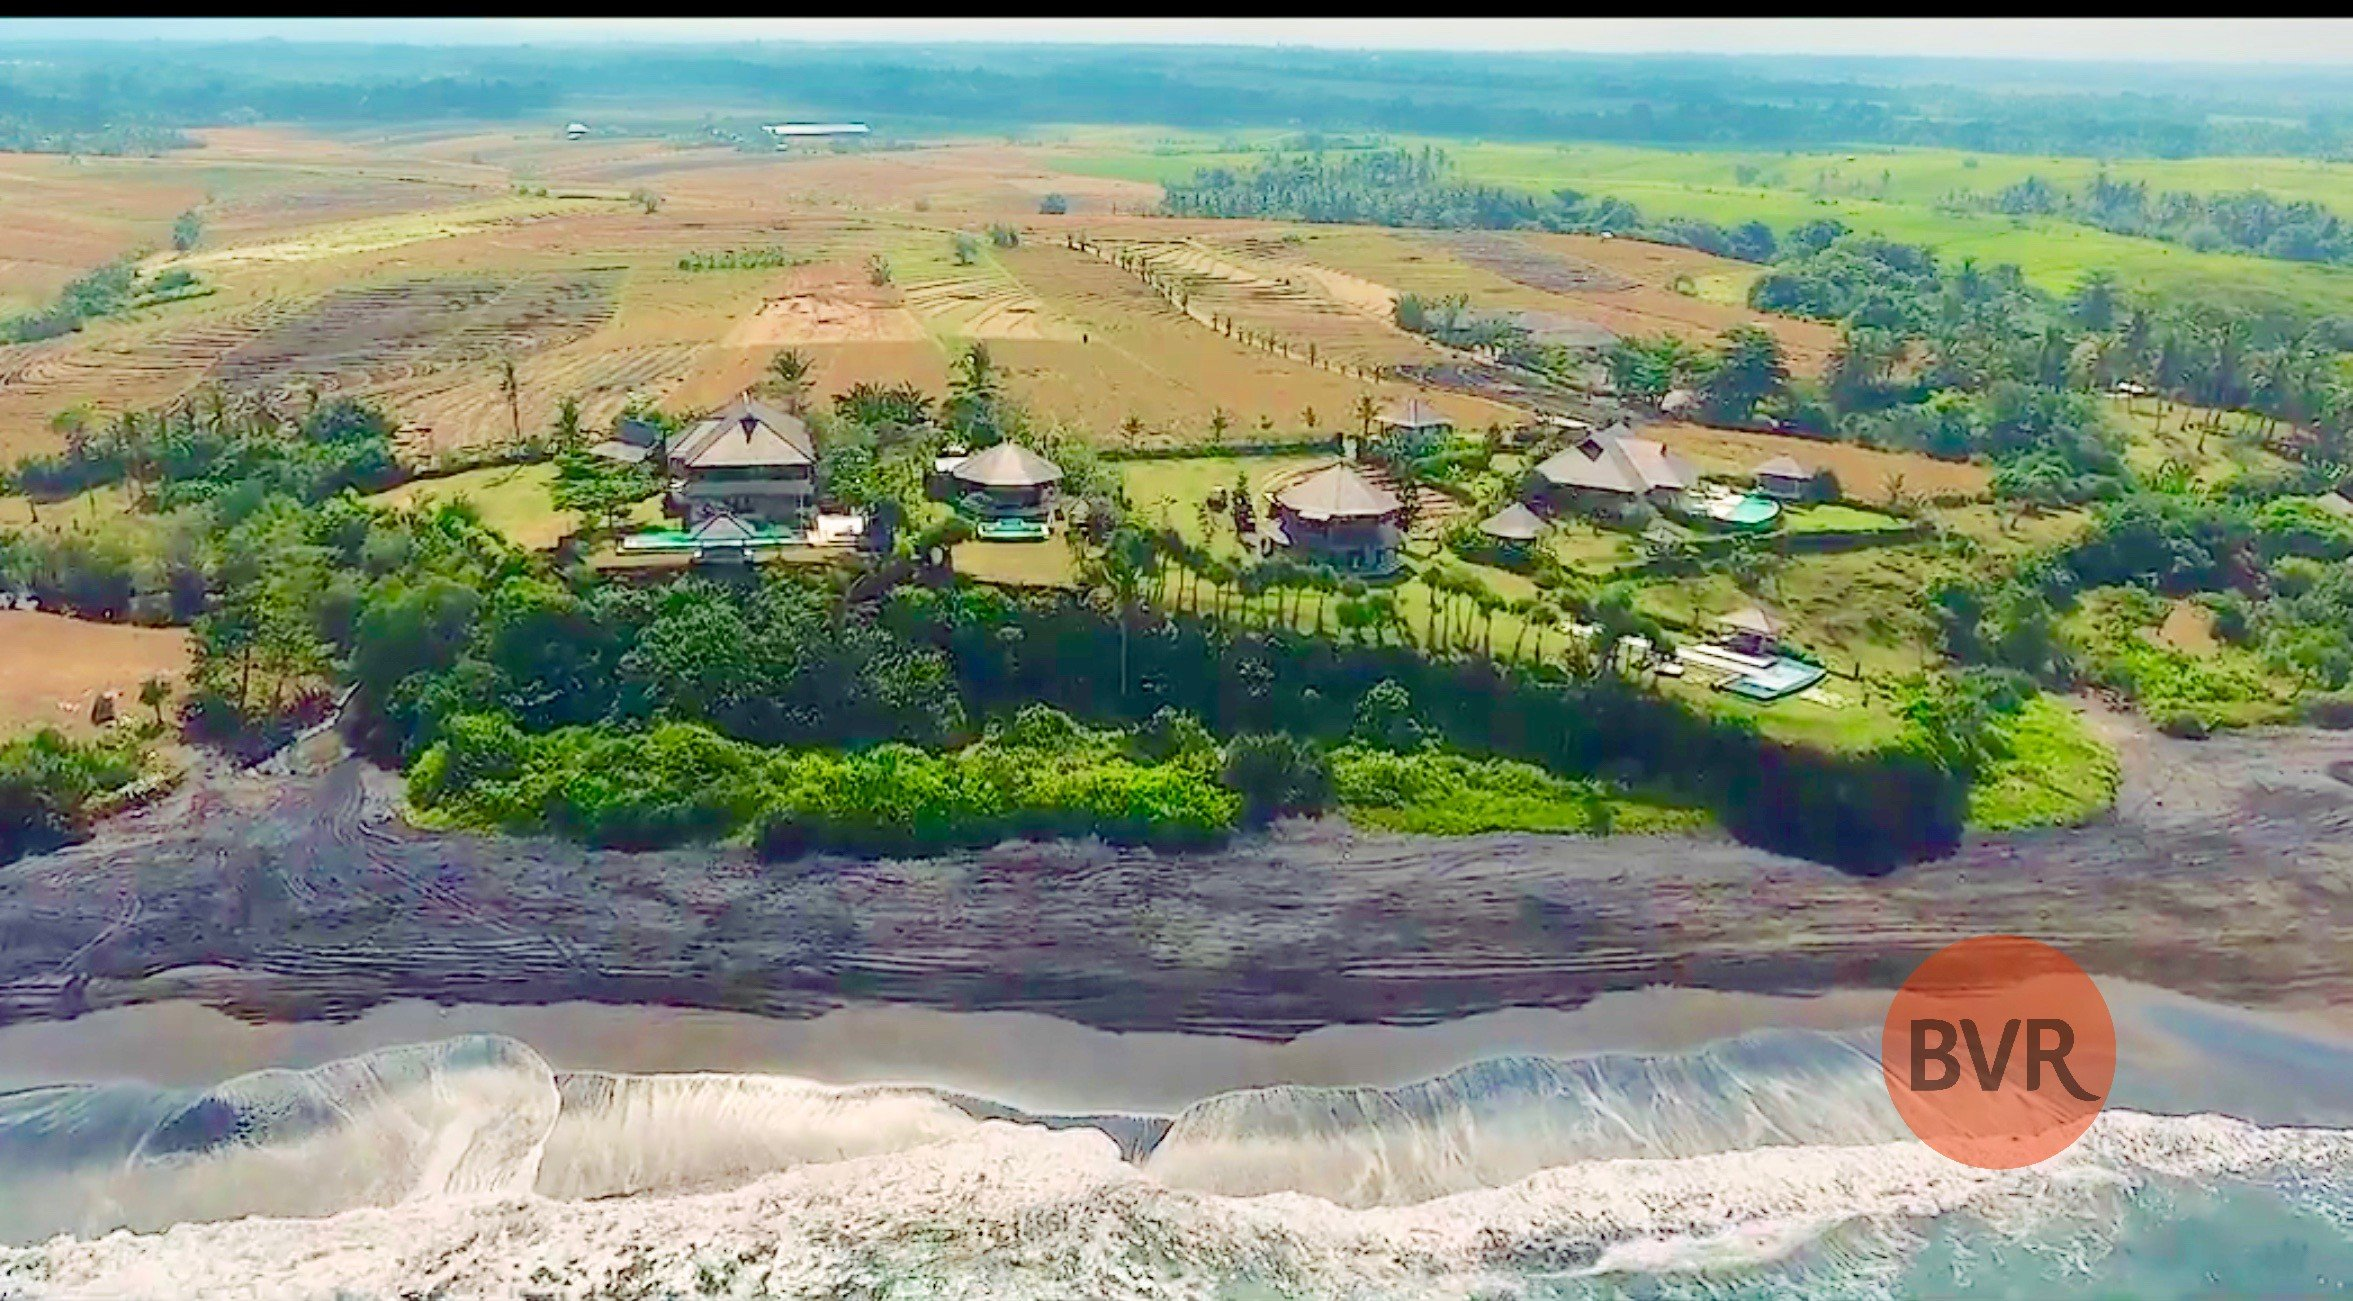 Absolute Beachfront Retreat 2.6 hectares 360-degree view